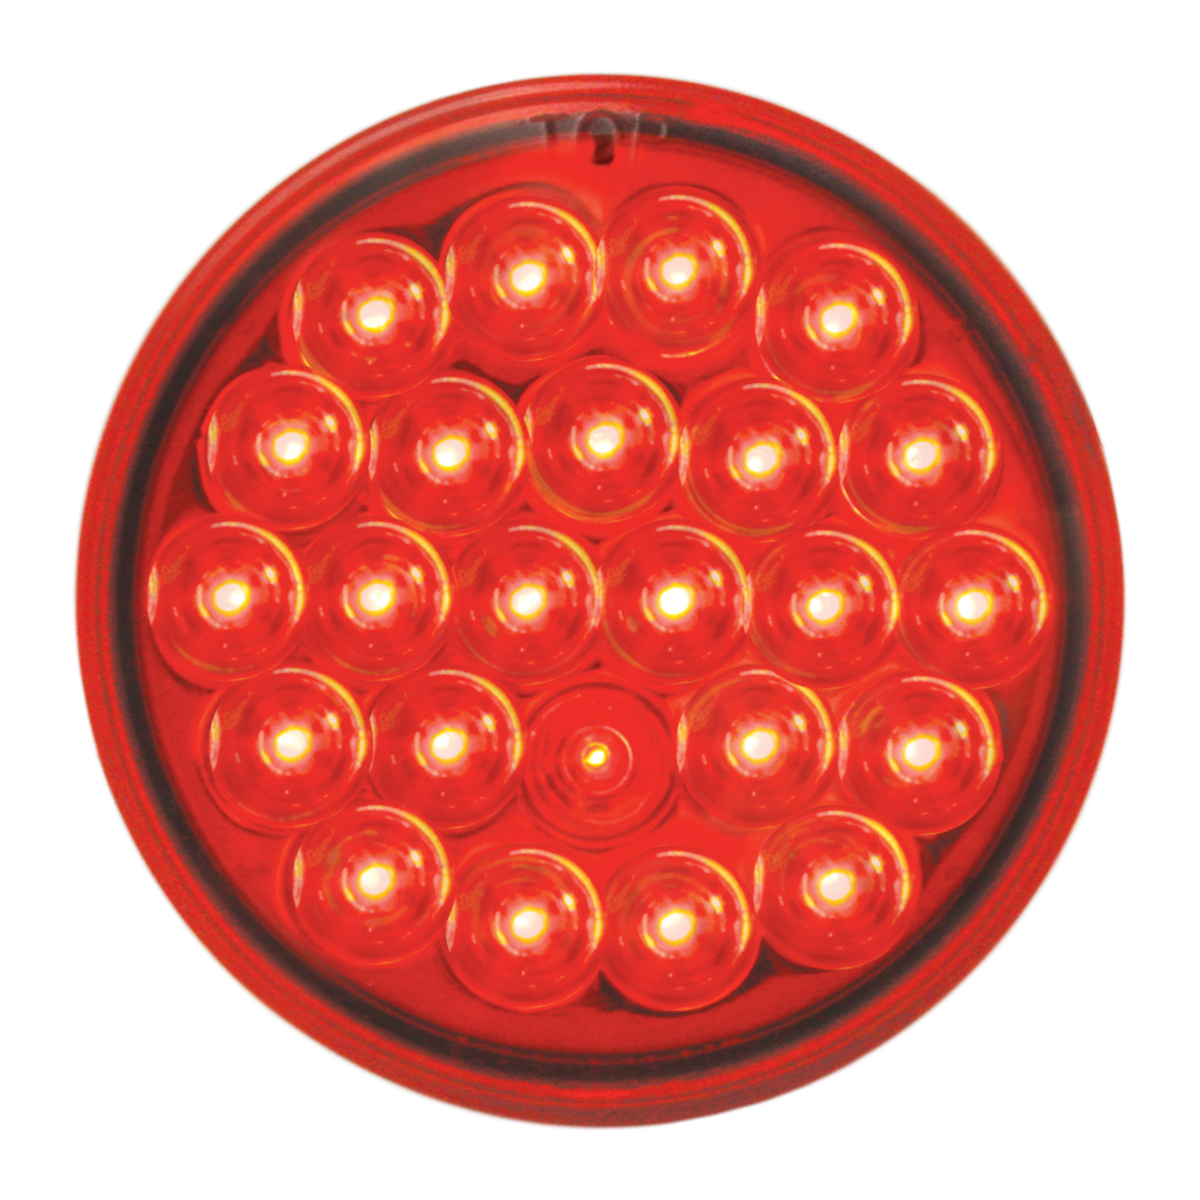 "78273 4"" Pearl LED Light in Red/Red"